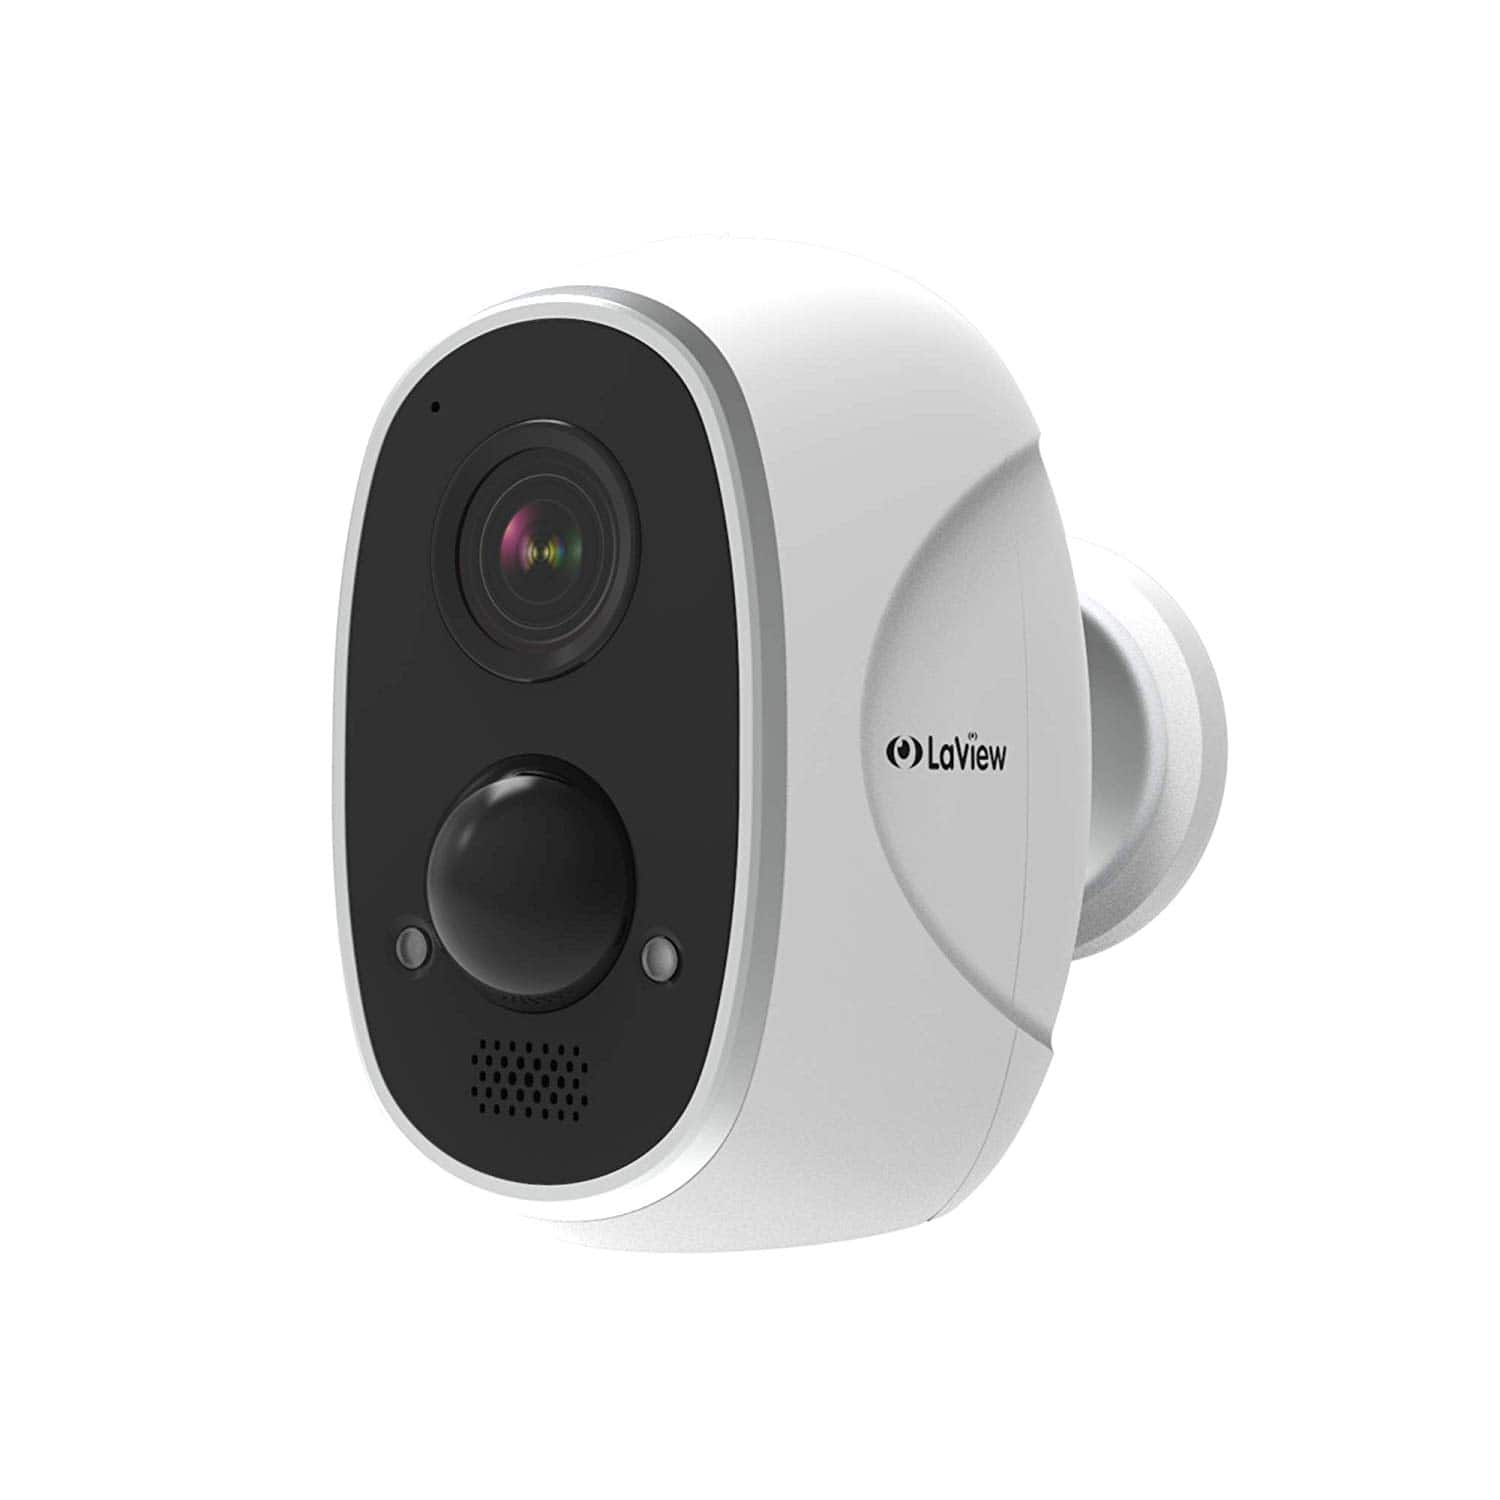 LaView ONE Link Battery Powered 1080p Wireless Wire-Free IP65 Outdoor Security Camera $99.99